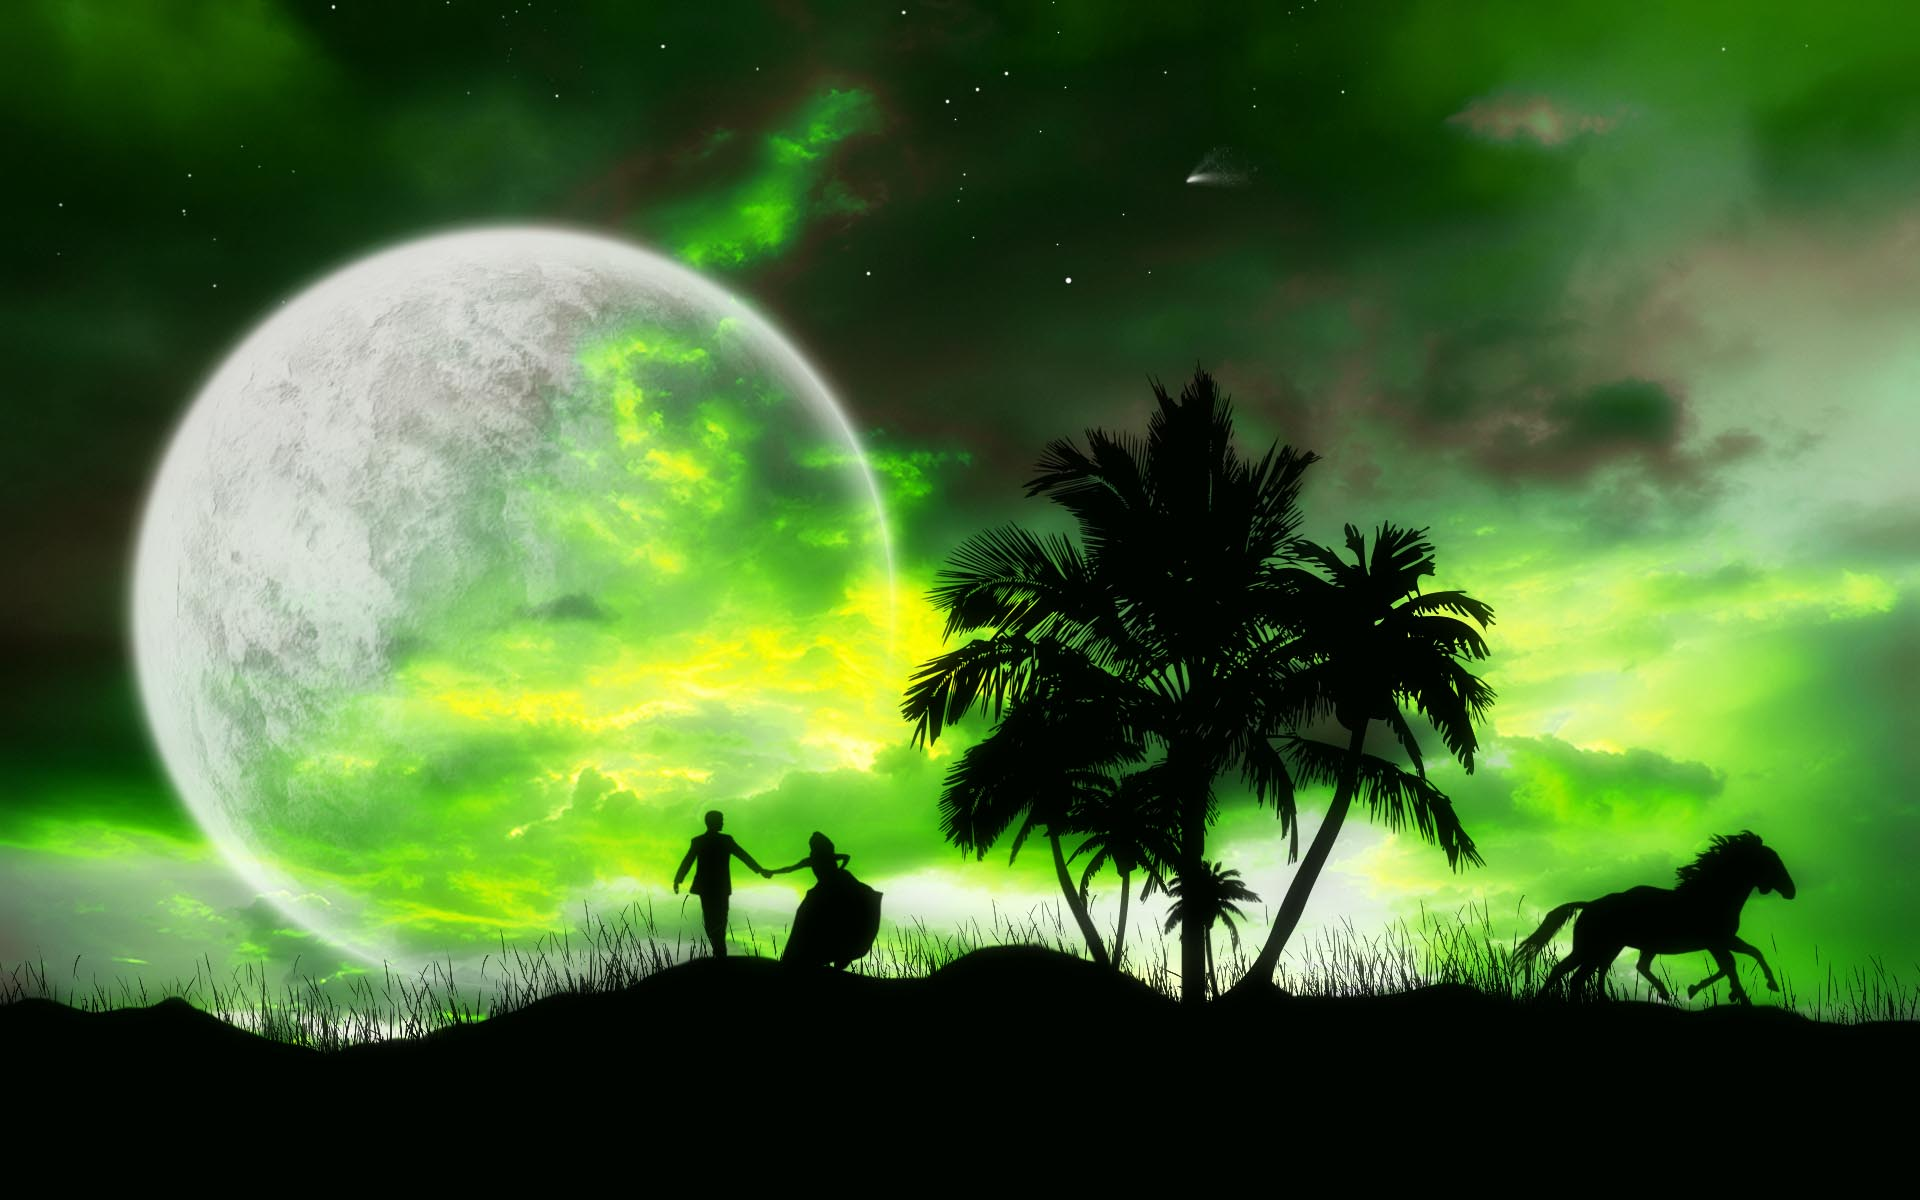 Love Couple With Moon Hd Wallpaper For Mobile: 20 Cute Animal Wallpapers